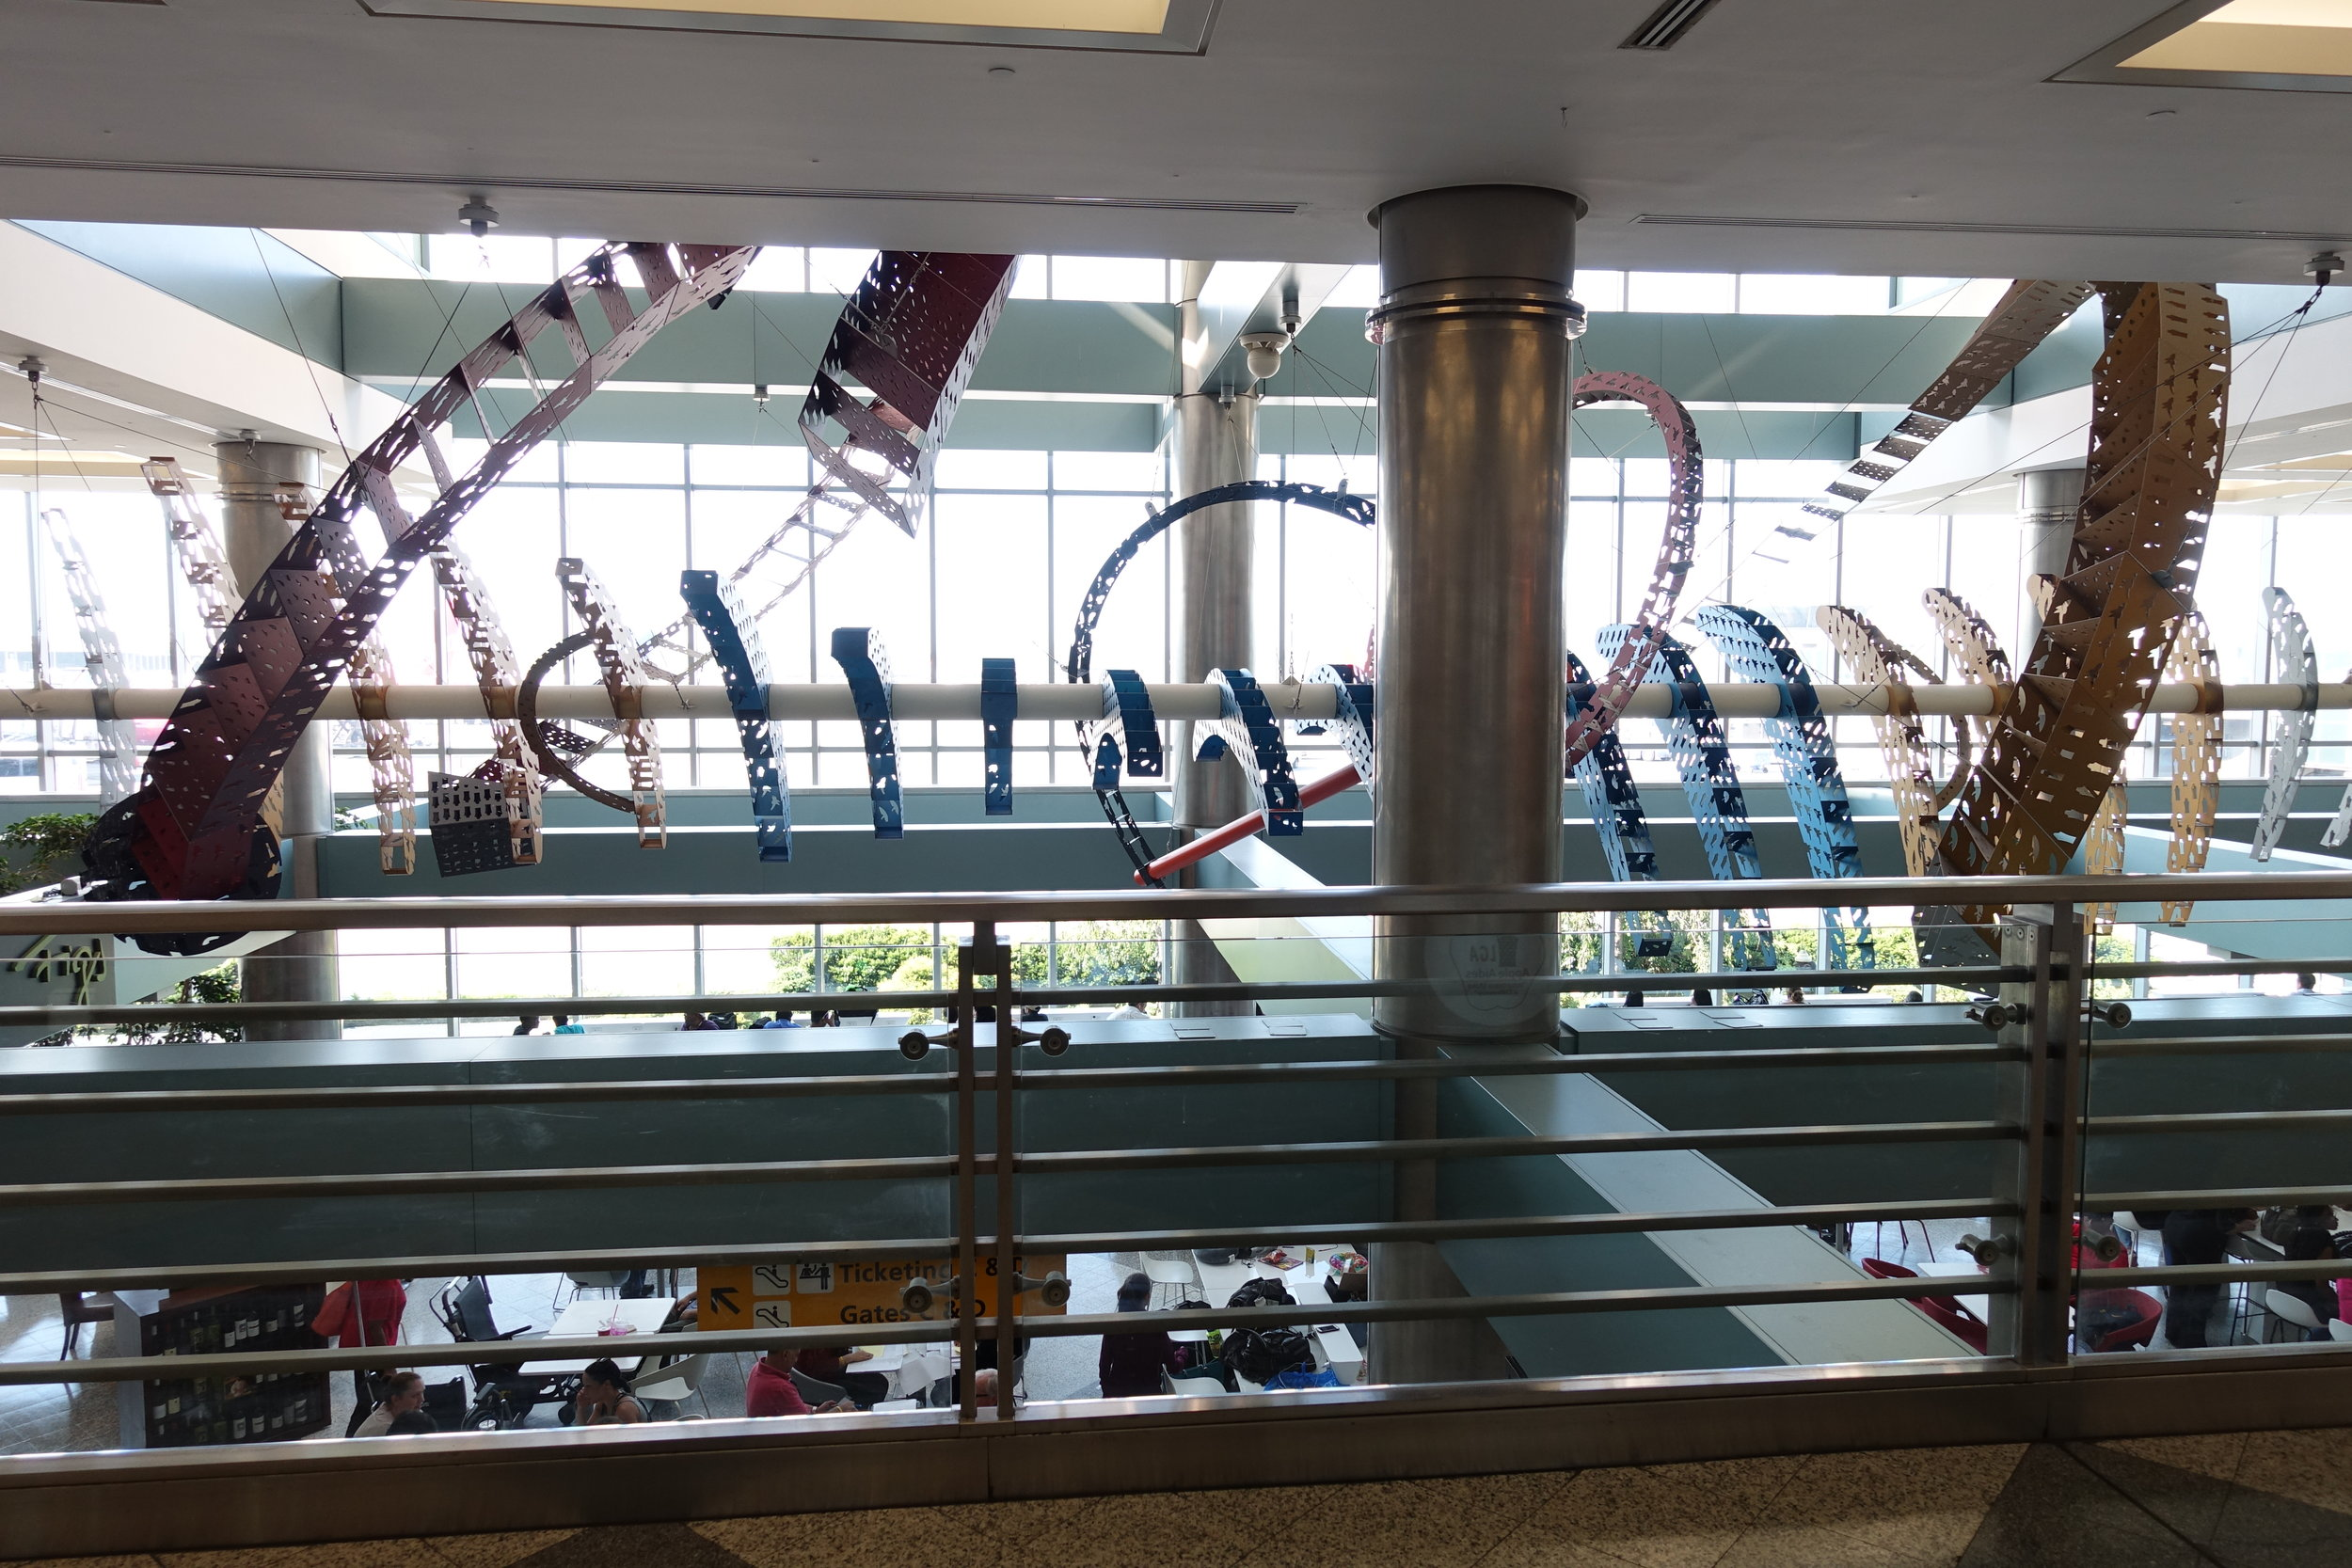 The view between concourse B and C.